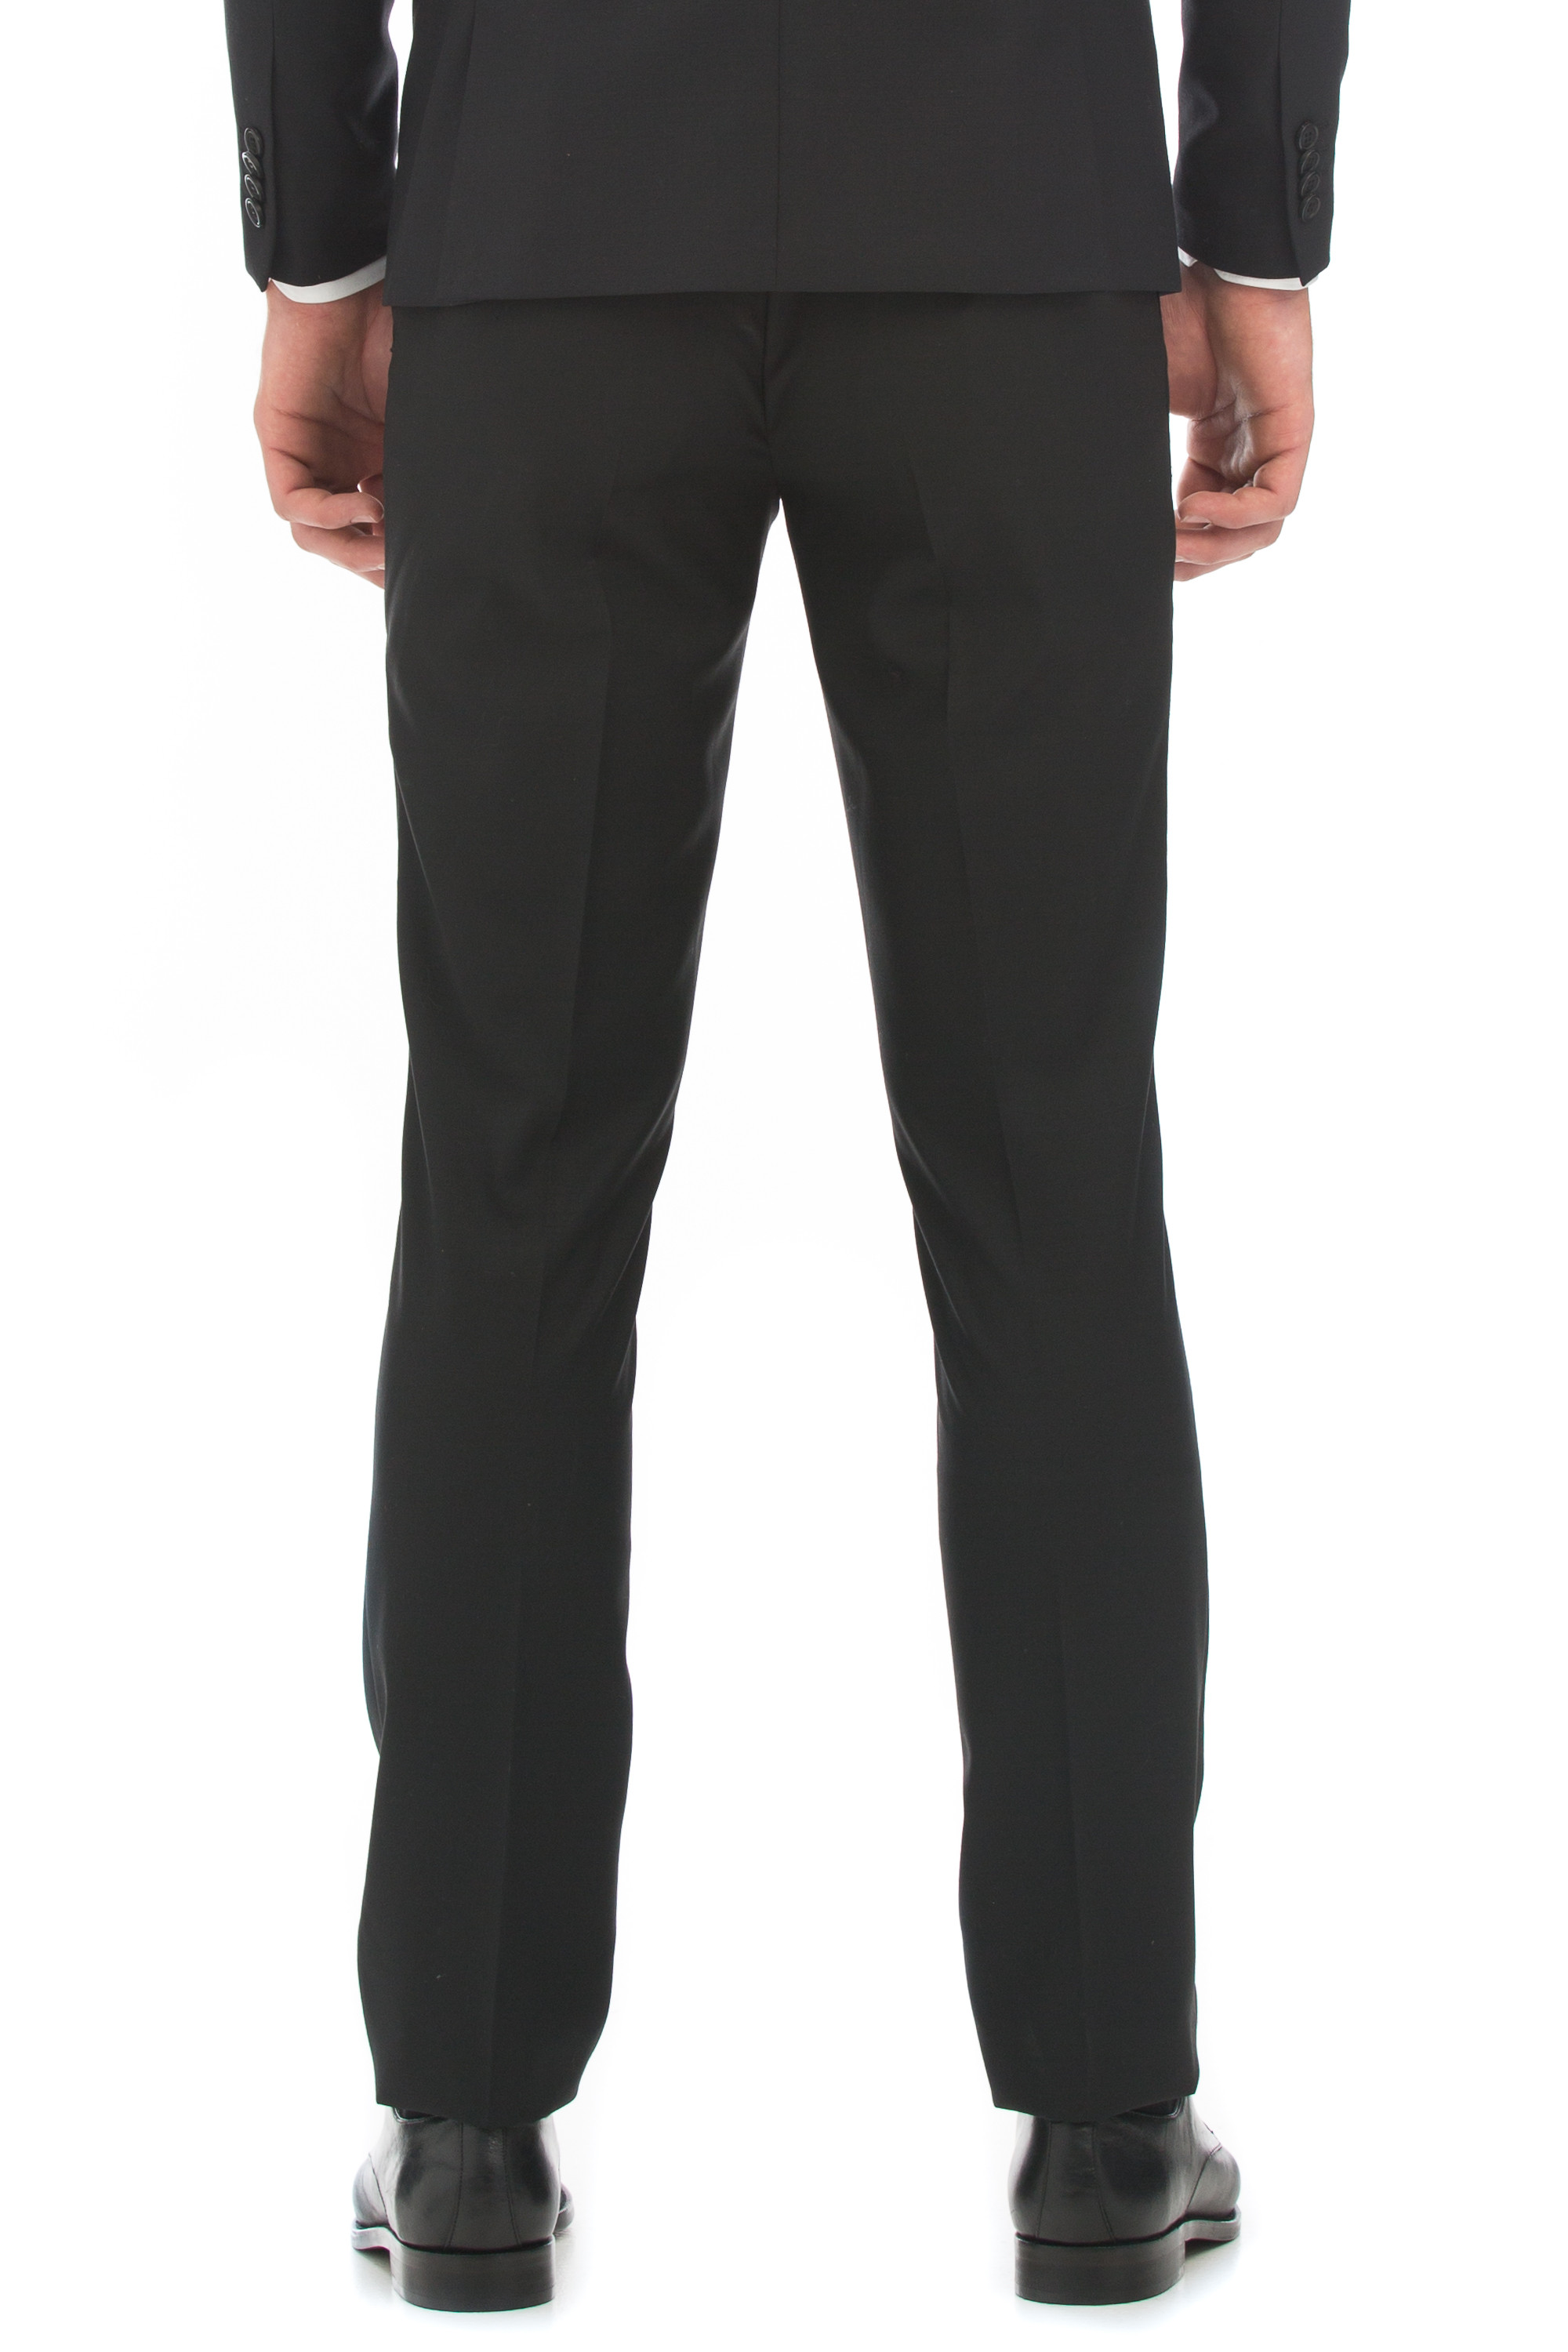 Ashford Black Pants